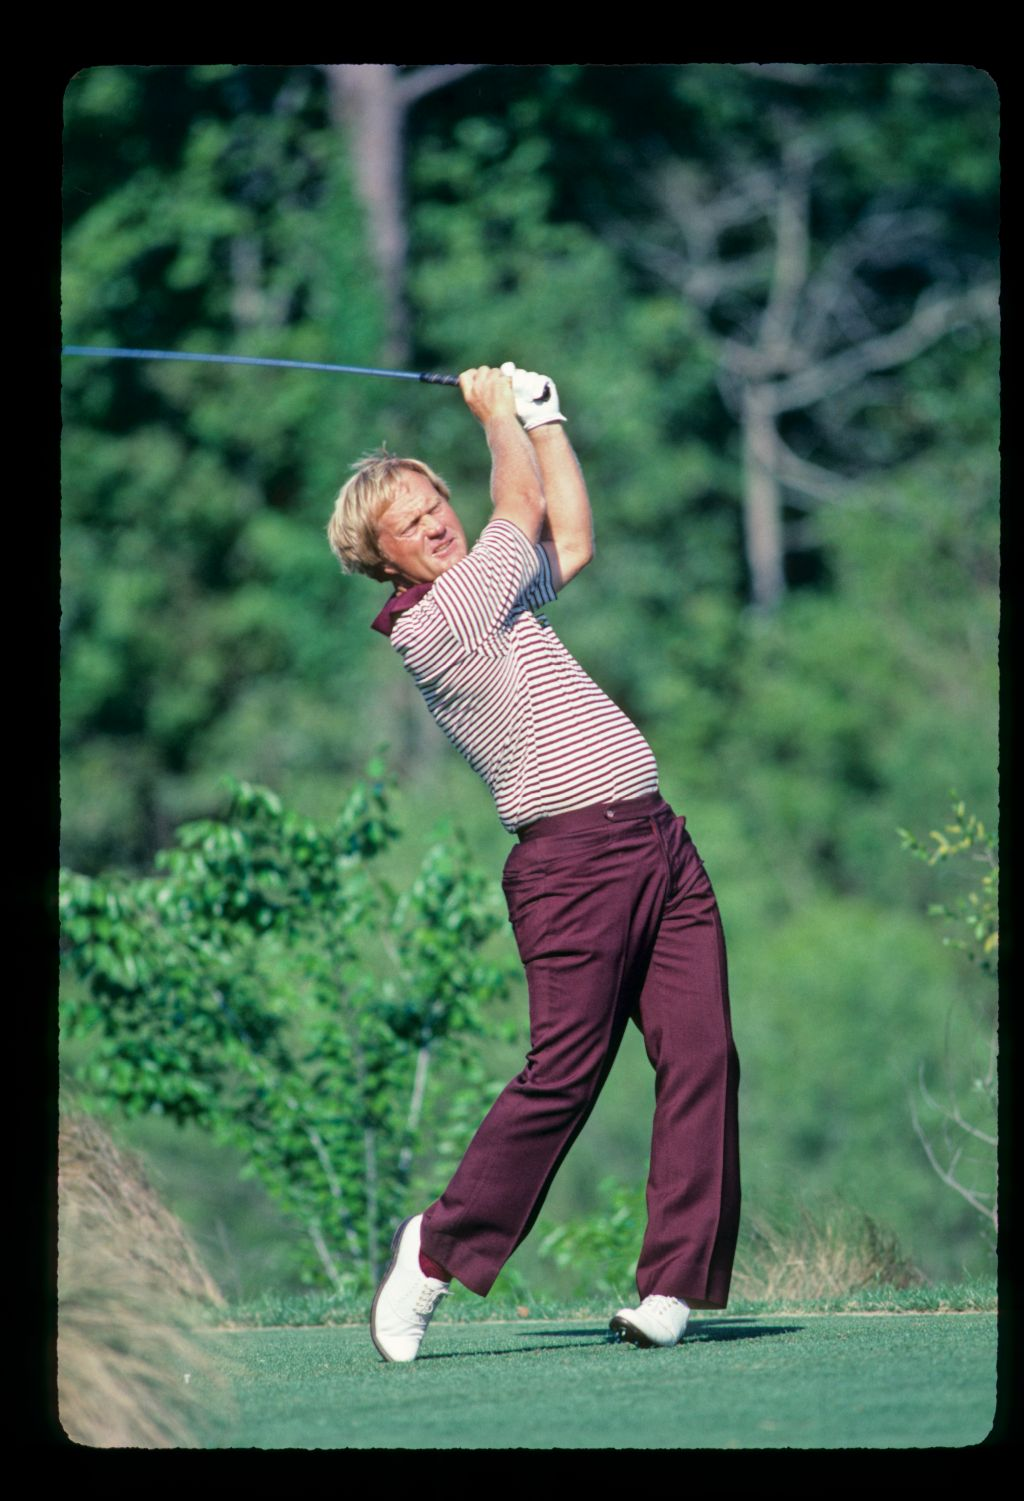 Jack Nicklaus in perfect balance while driving during the 1985 TPC